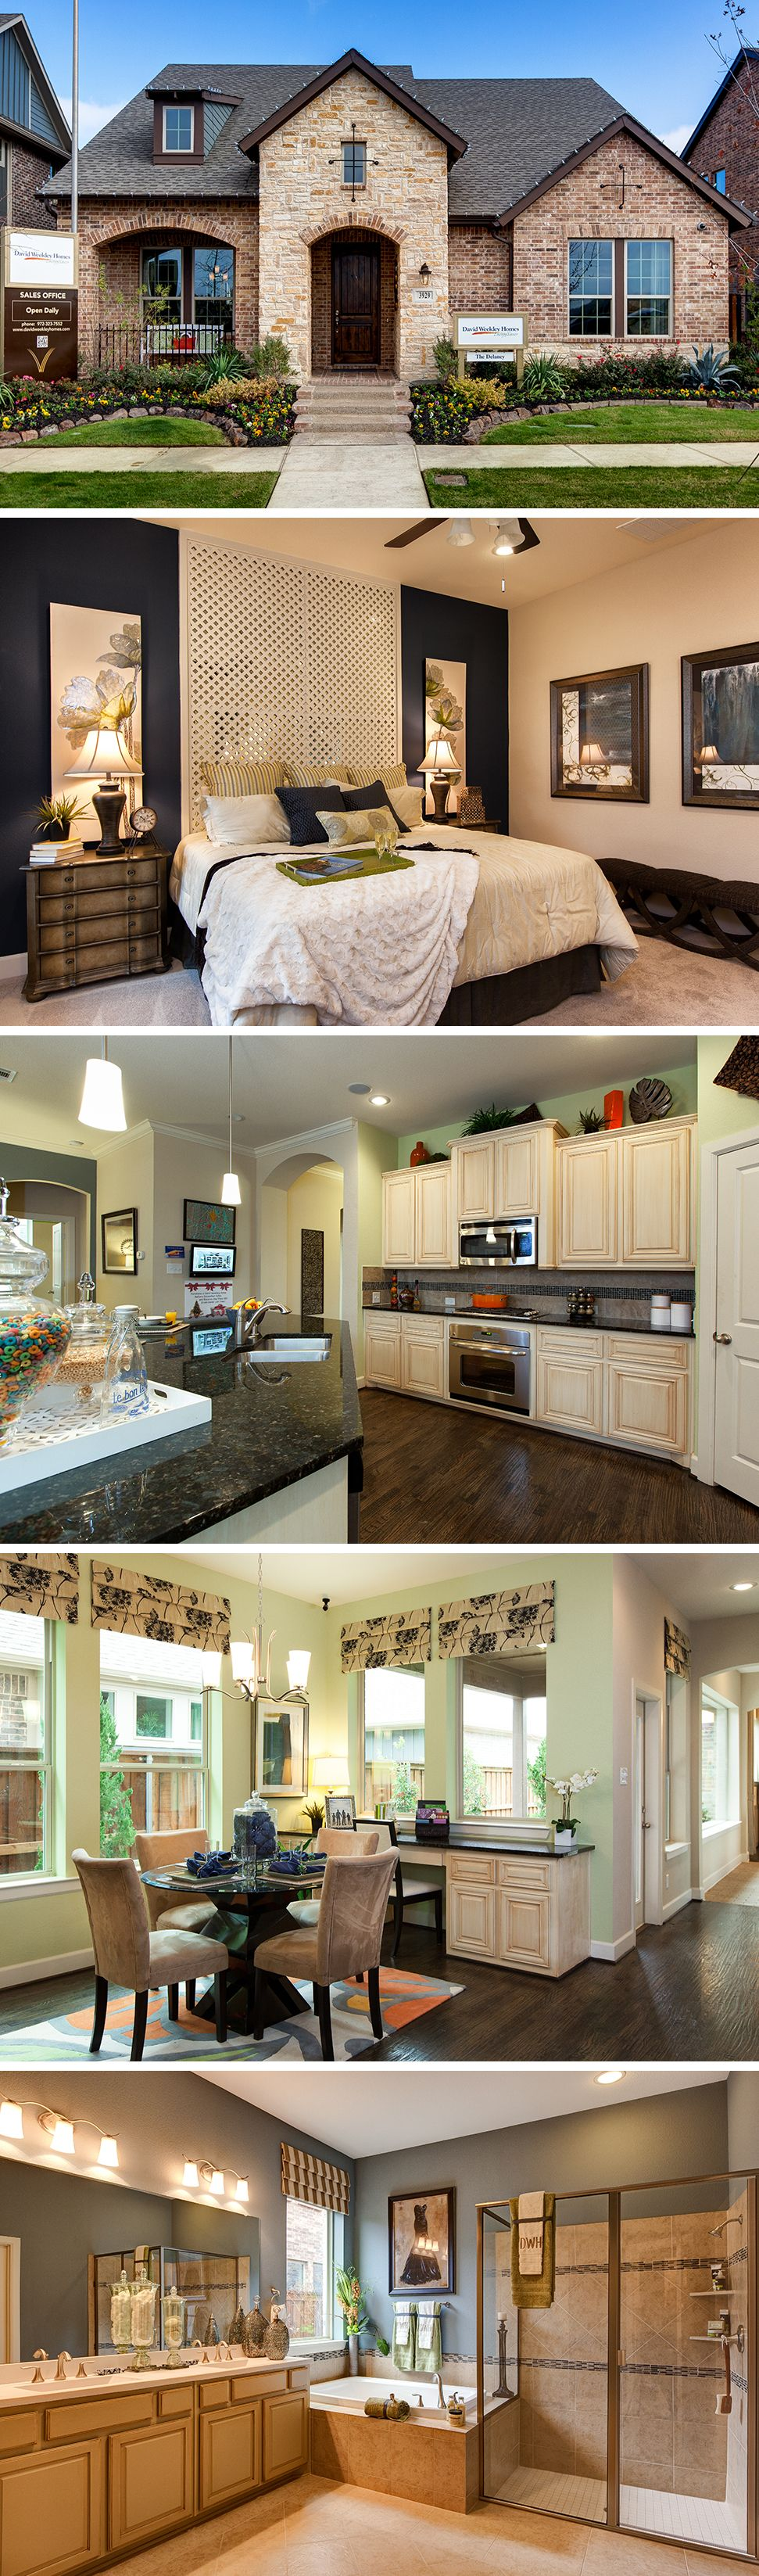 The Delaney by David Weekley Homes in Viridian Executive